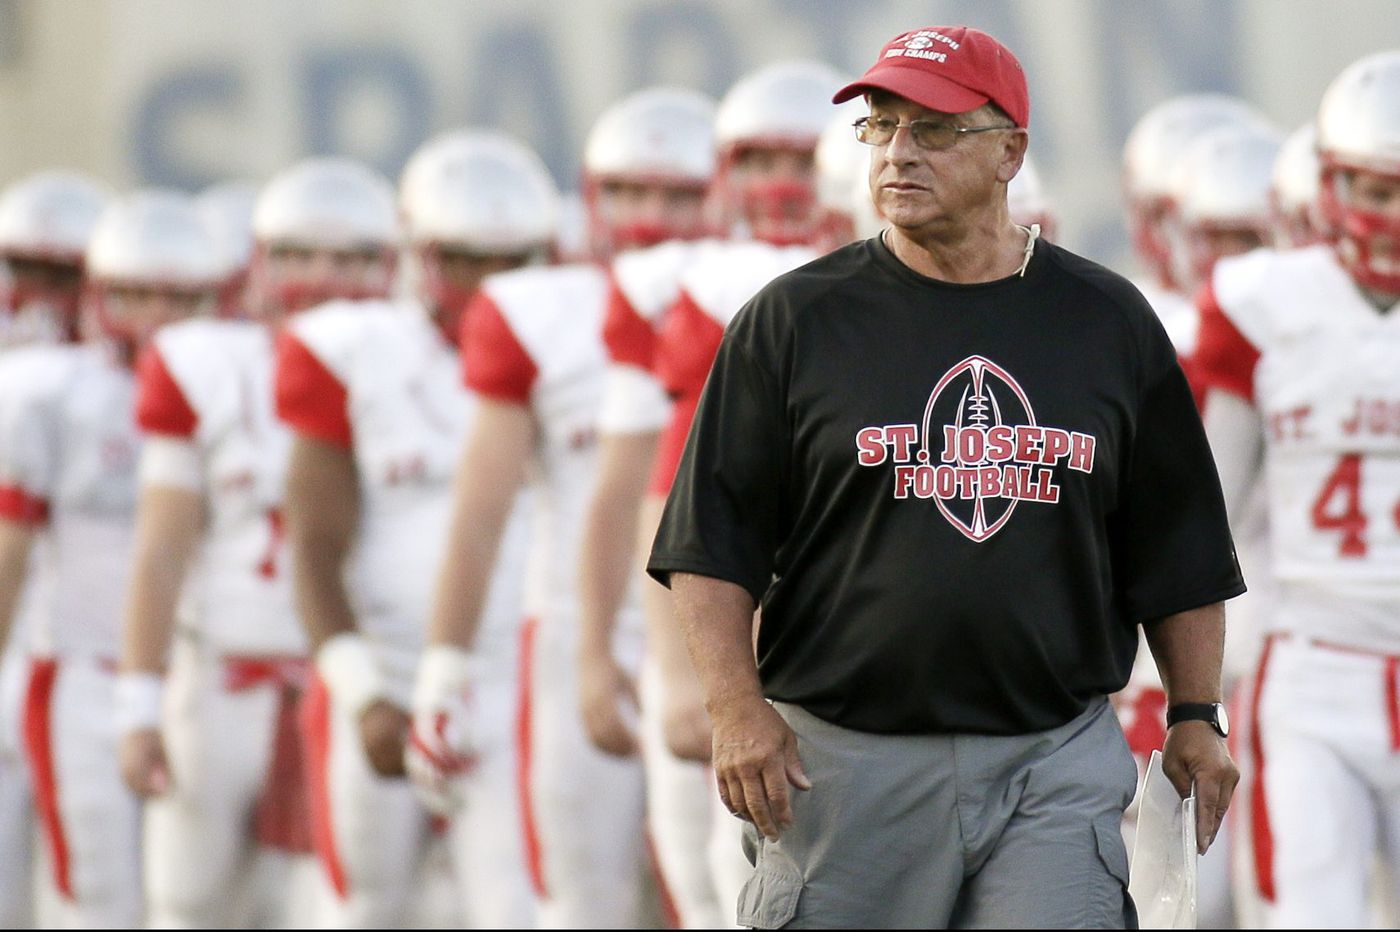 St. Joseph looks to finish strange football season in familiar fashion: with state title